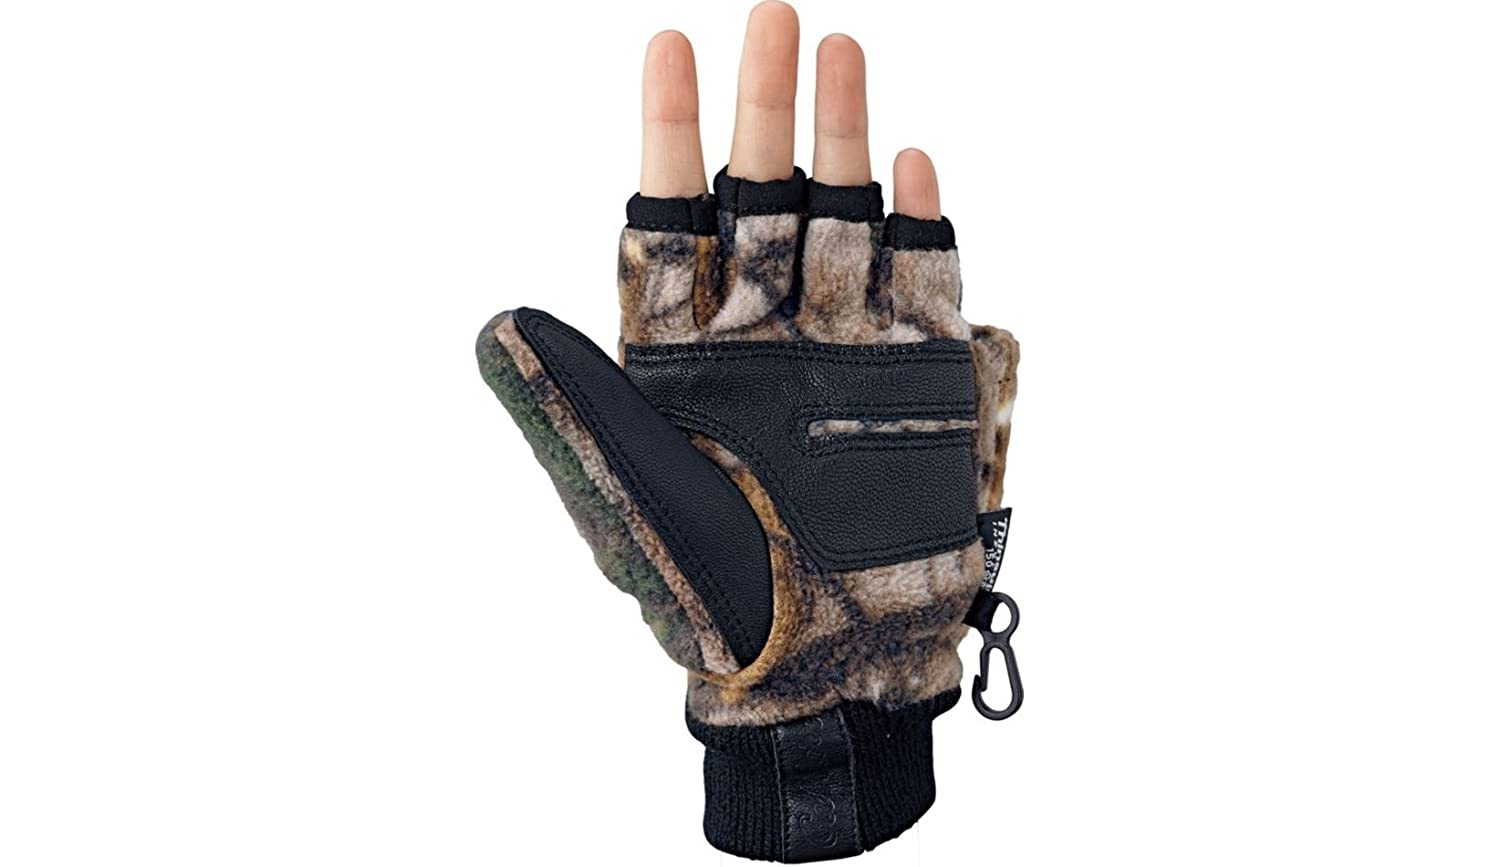 d4922a3537057 Cabela's Kids' Big-Game Fleece Thinsulate Glomitts - Camo Cold Weather  Mittens - Warmer than Gloves, Camouflage Accessories - Amazon Canada